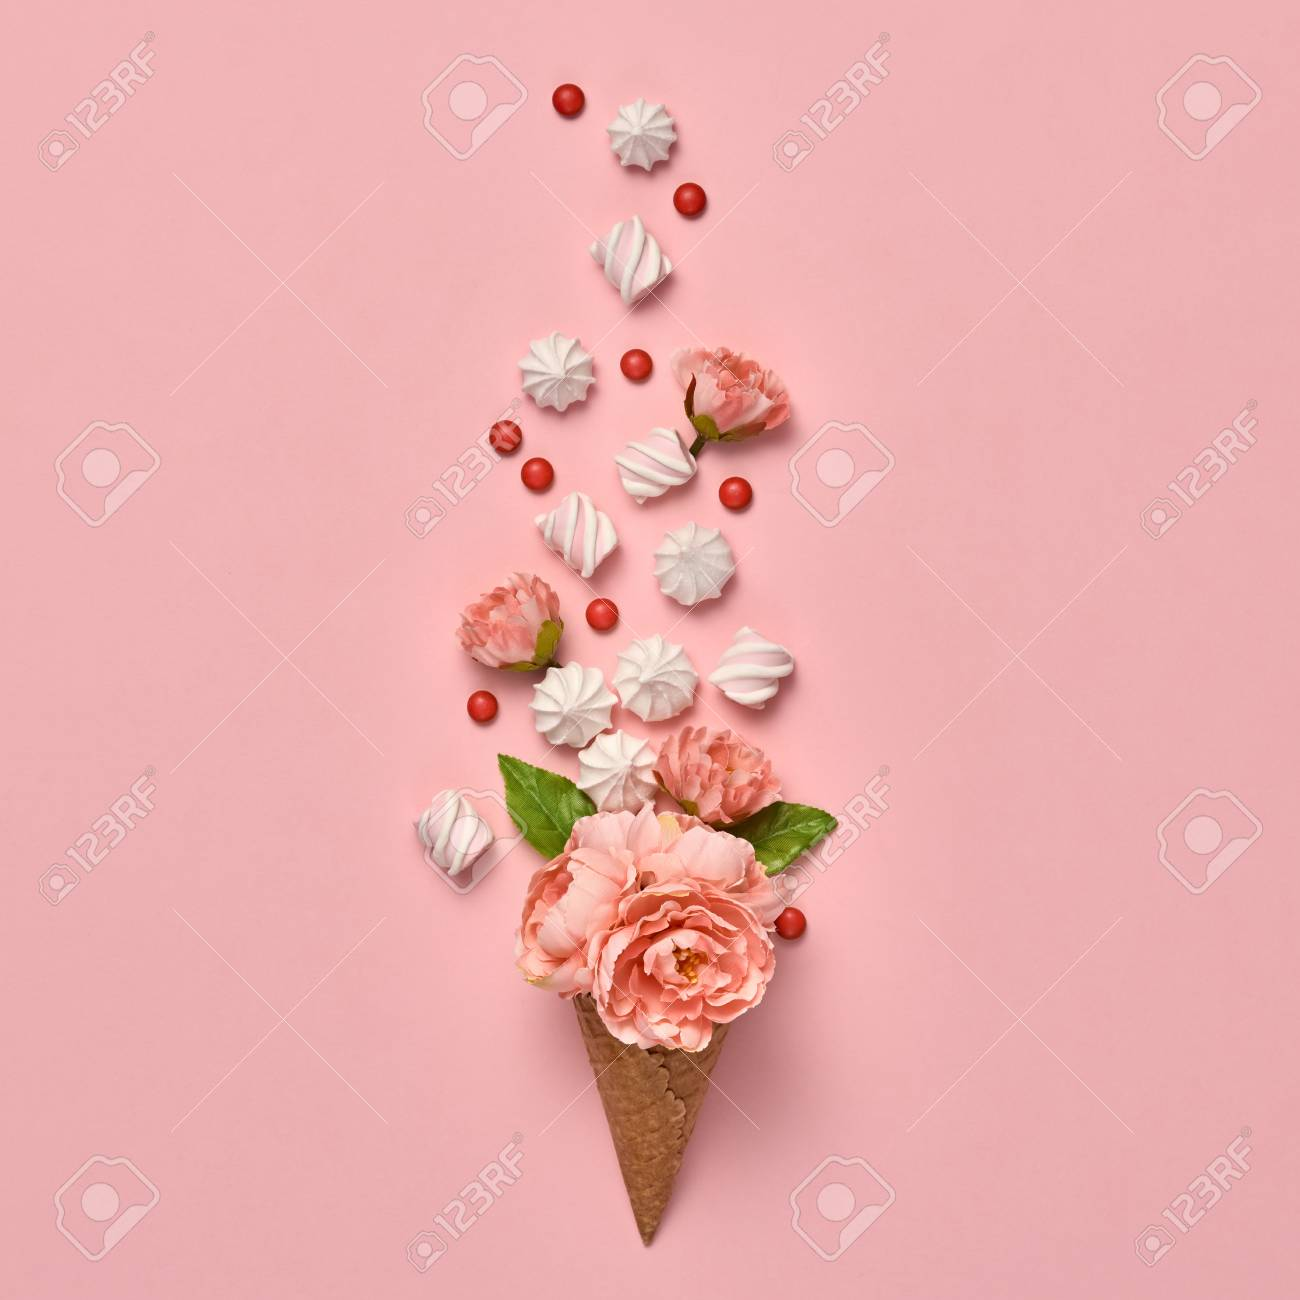 Ice Cream Cone With Candies Sweets Marshmallow Meringue Flowers